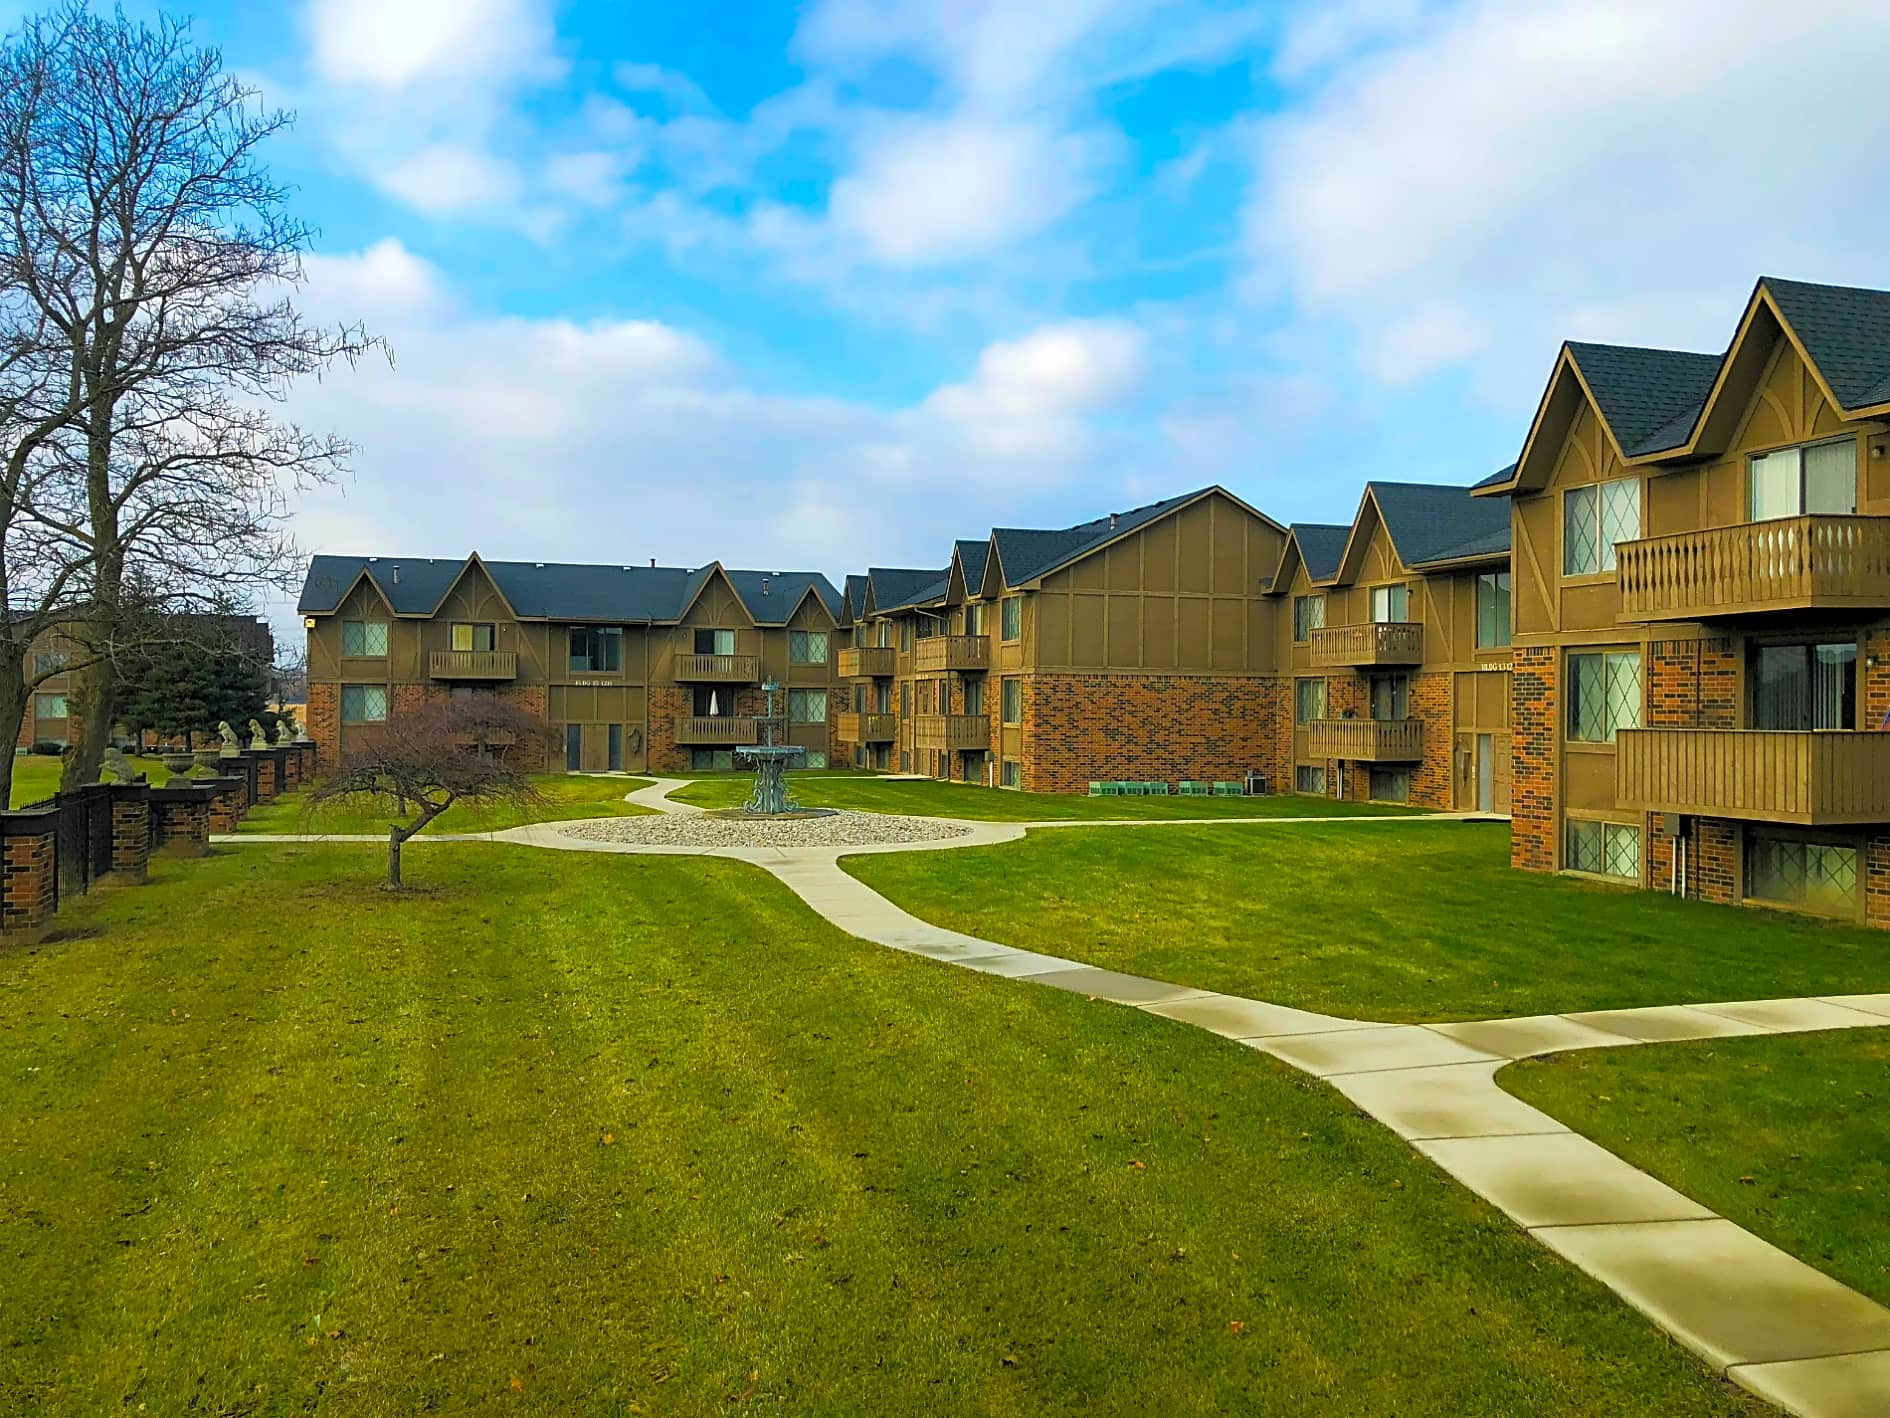 Picturesque Community- Stonehenge Gates in Flint, MI!